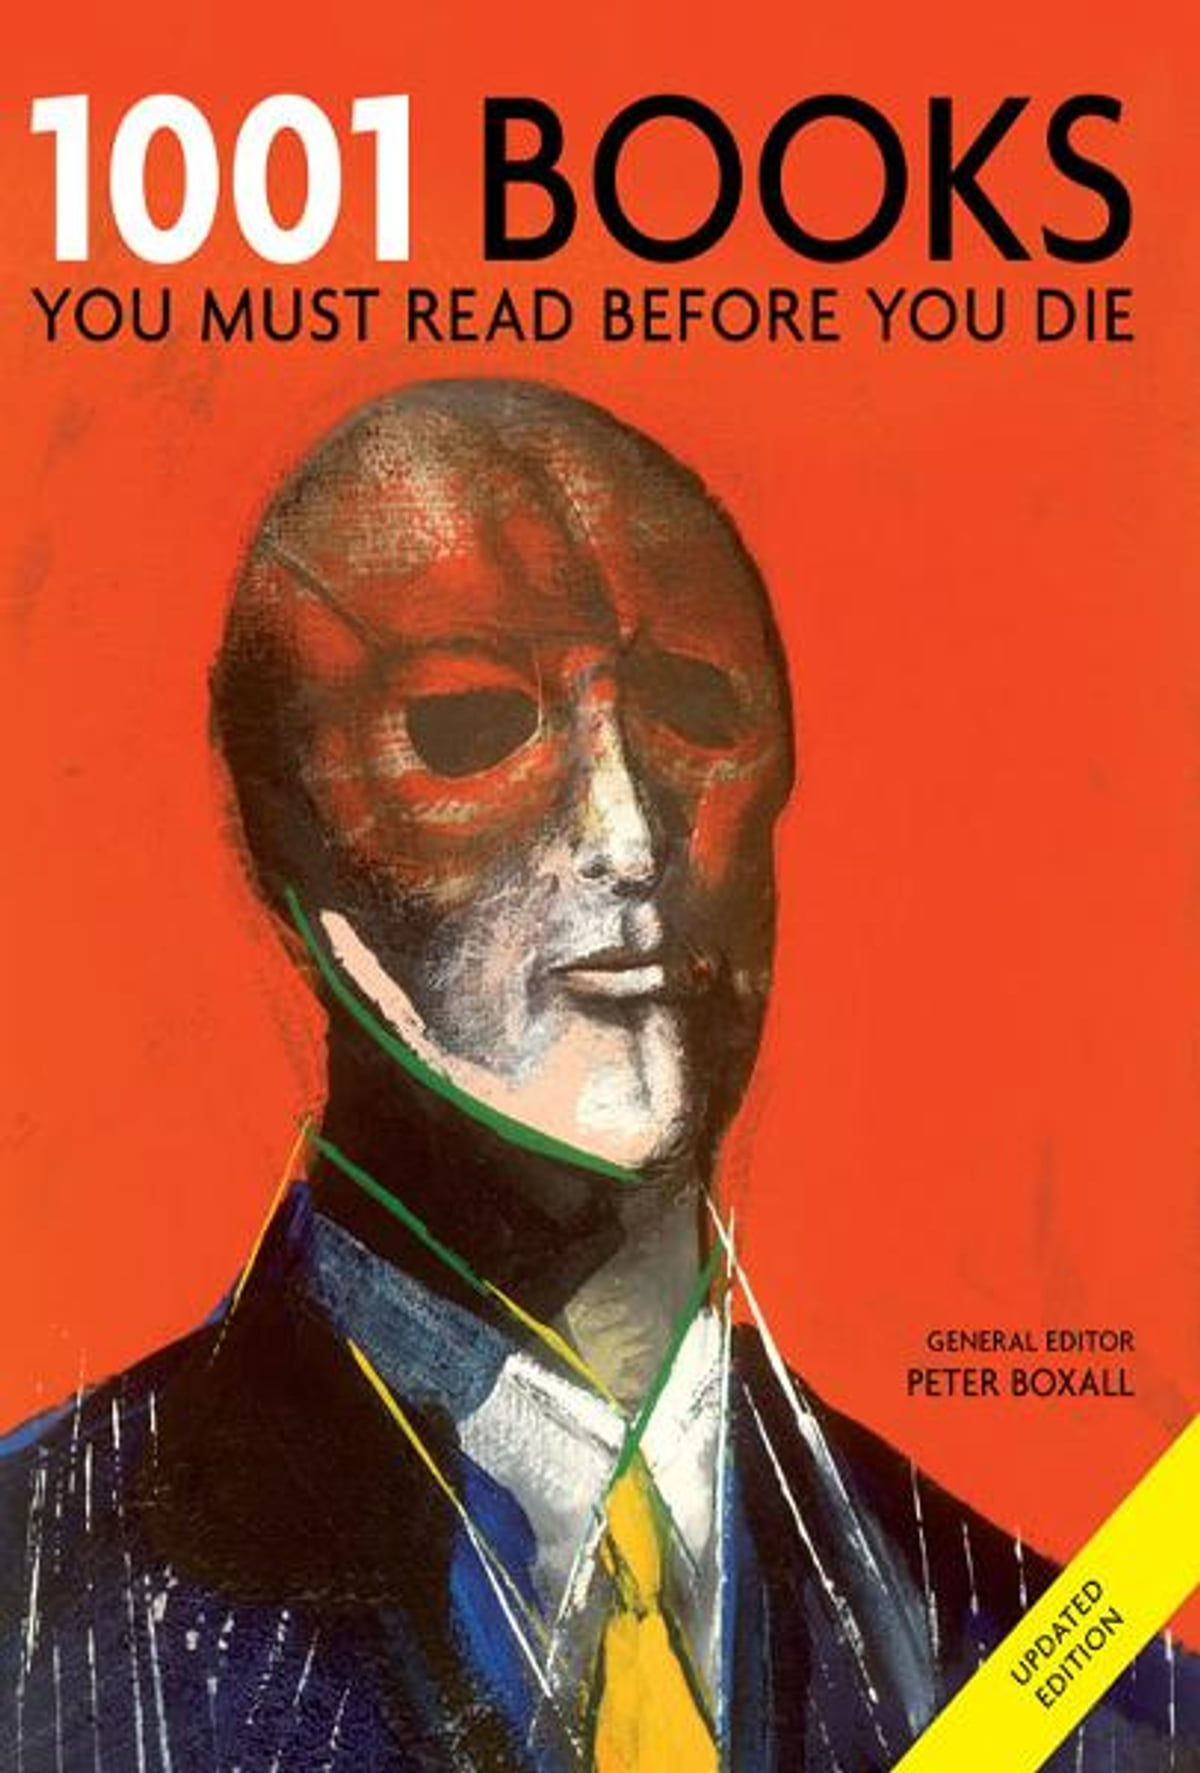 1001 Books You Must Read Before You Die eBook by Peter Boxall -  9781844037193 | Rakuten Kobo